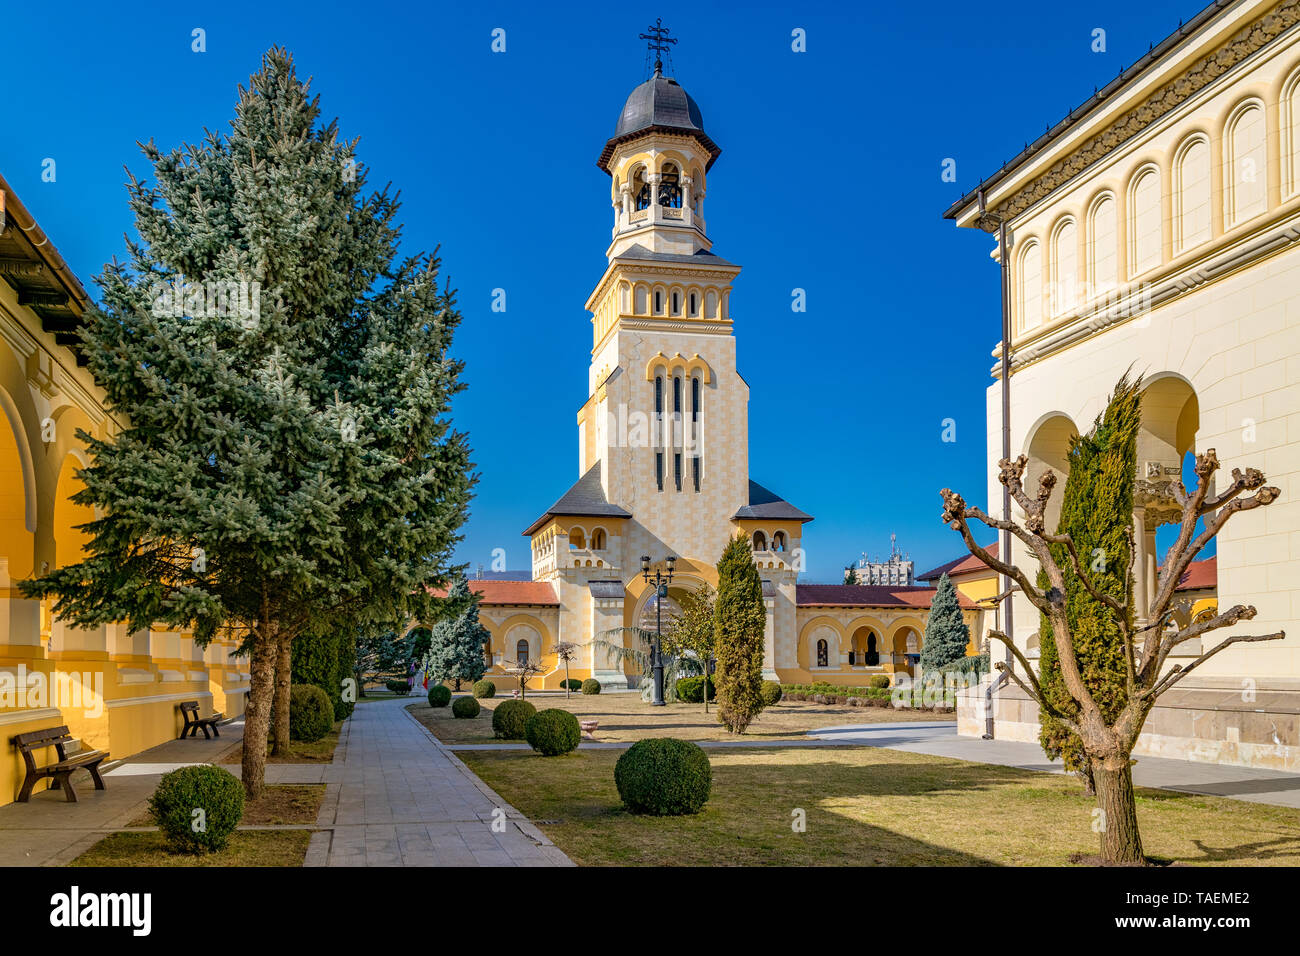 Beautiful view to the Coronation Reunification Cathedral Bell Tower in Alba Iulia city, Romania. A Bell Tower on a sunny day in Alba Iulia, Romania. Stock Photo